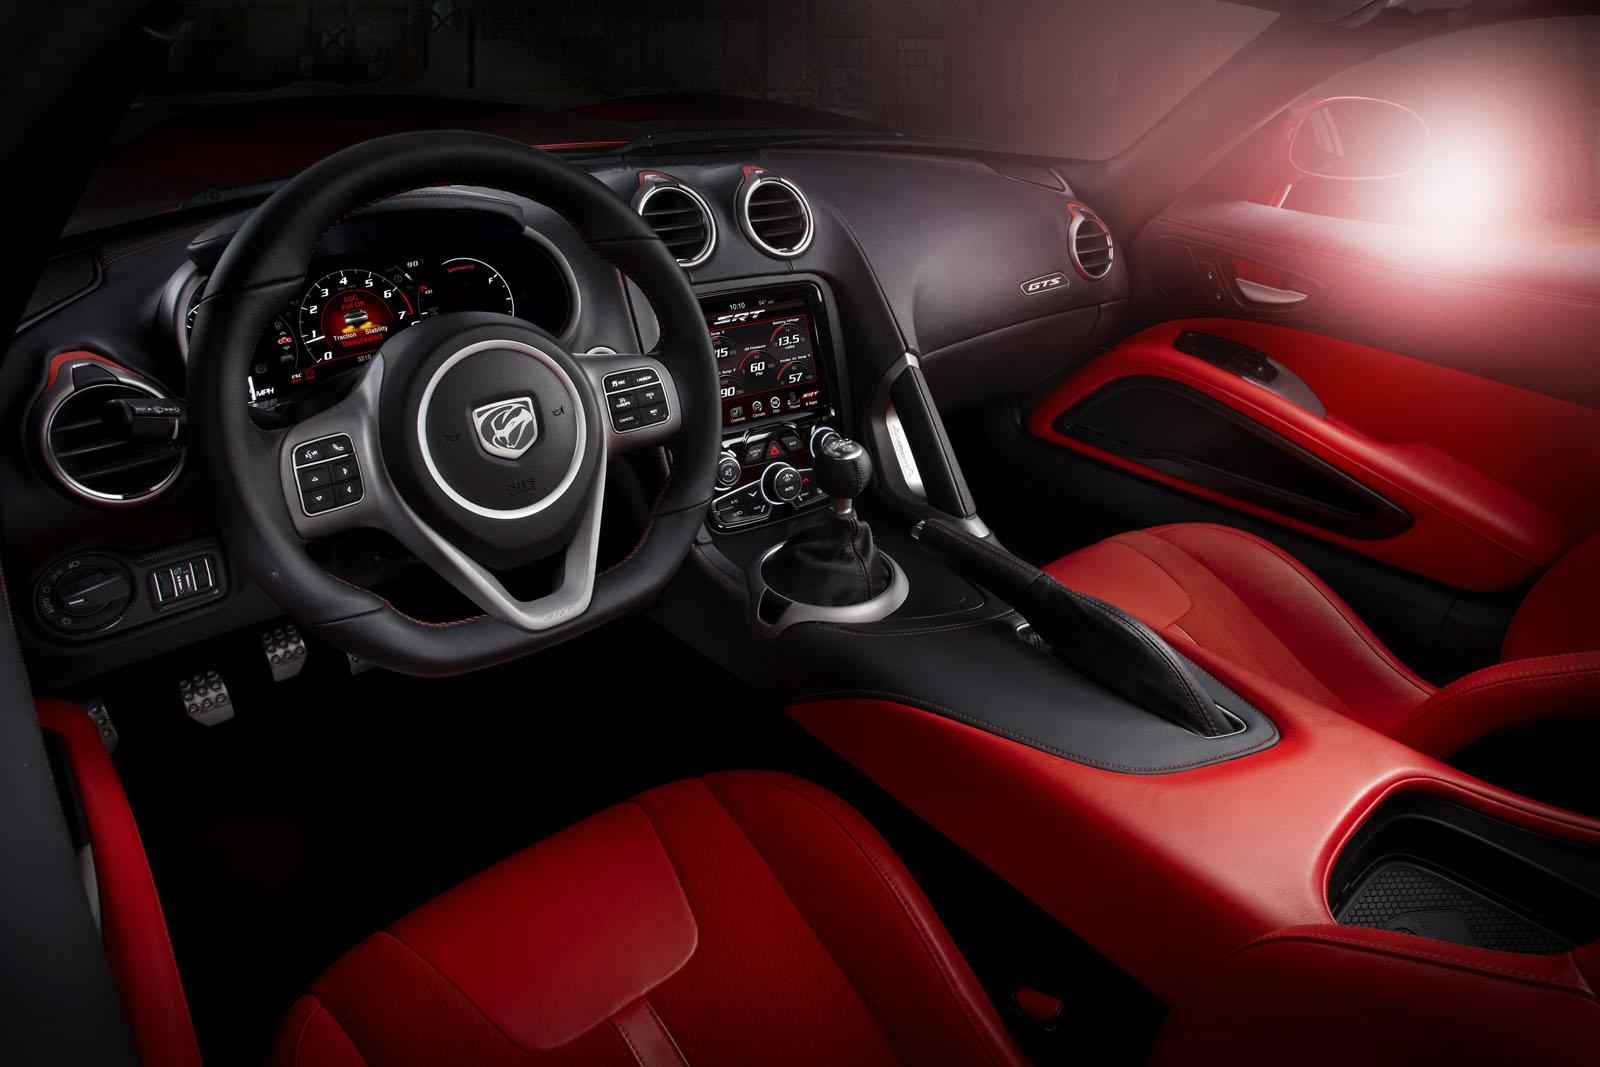 2013 SRT Viper GTS Launch Edition 8 2013 SRT Viper GTS Launch Edition   a better version than its previous models